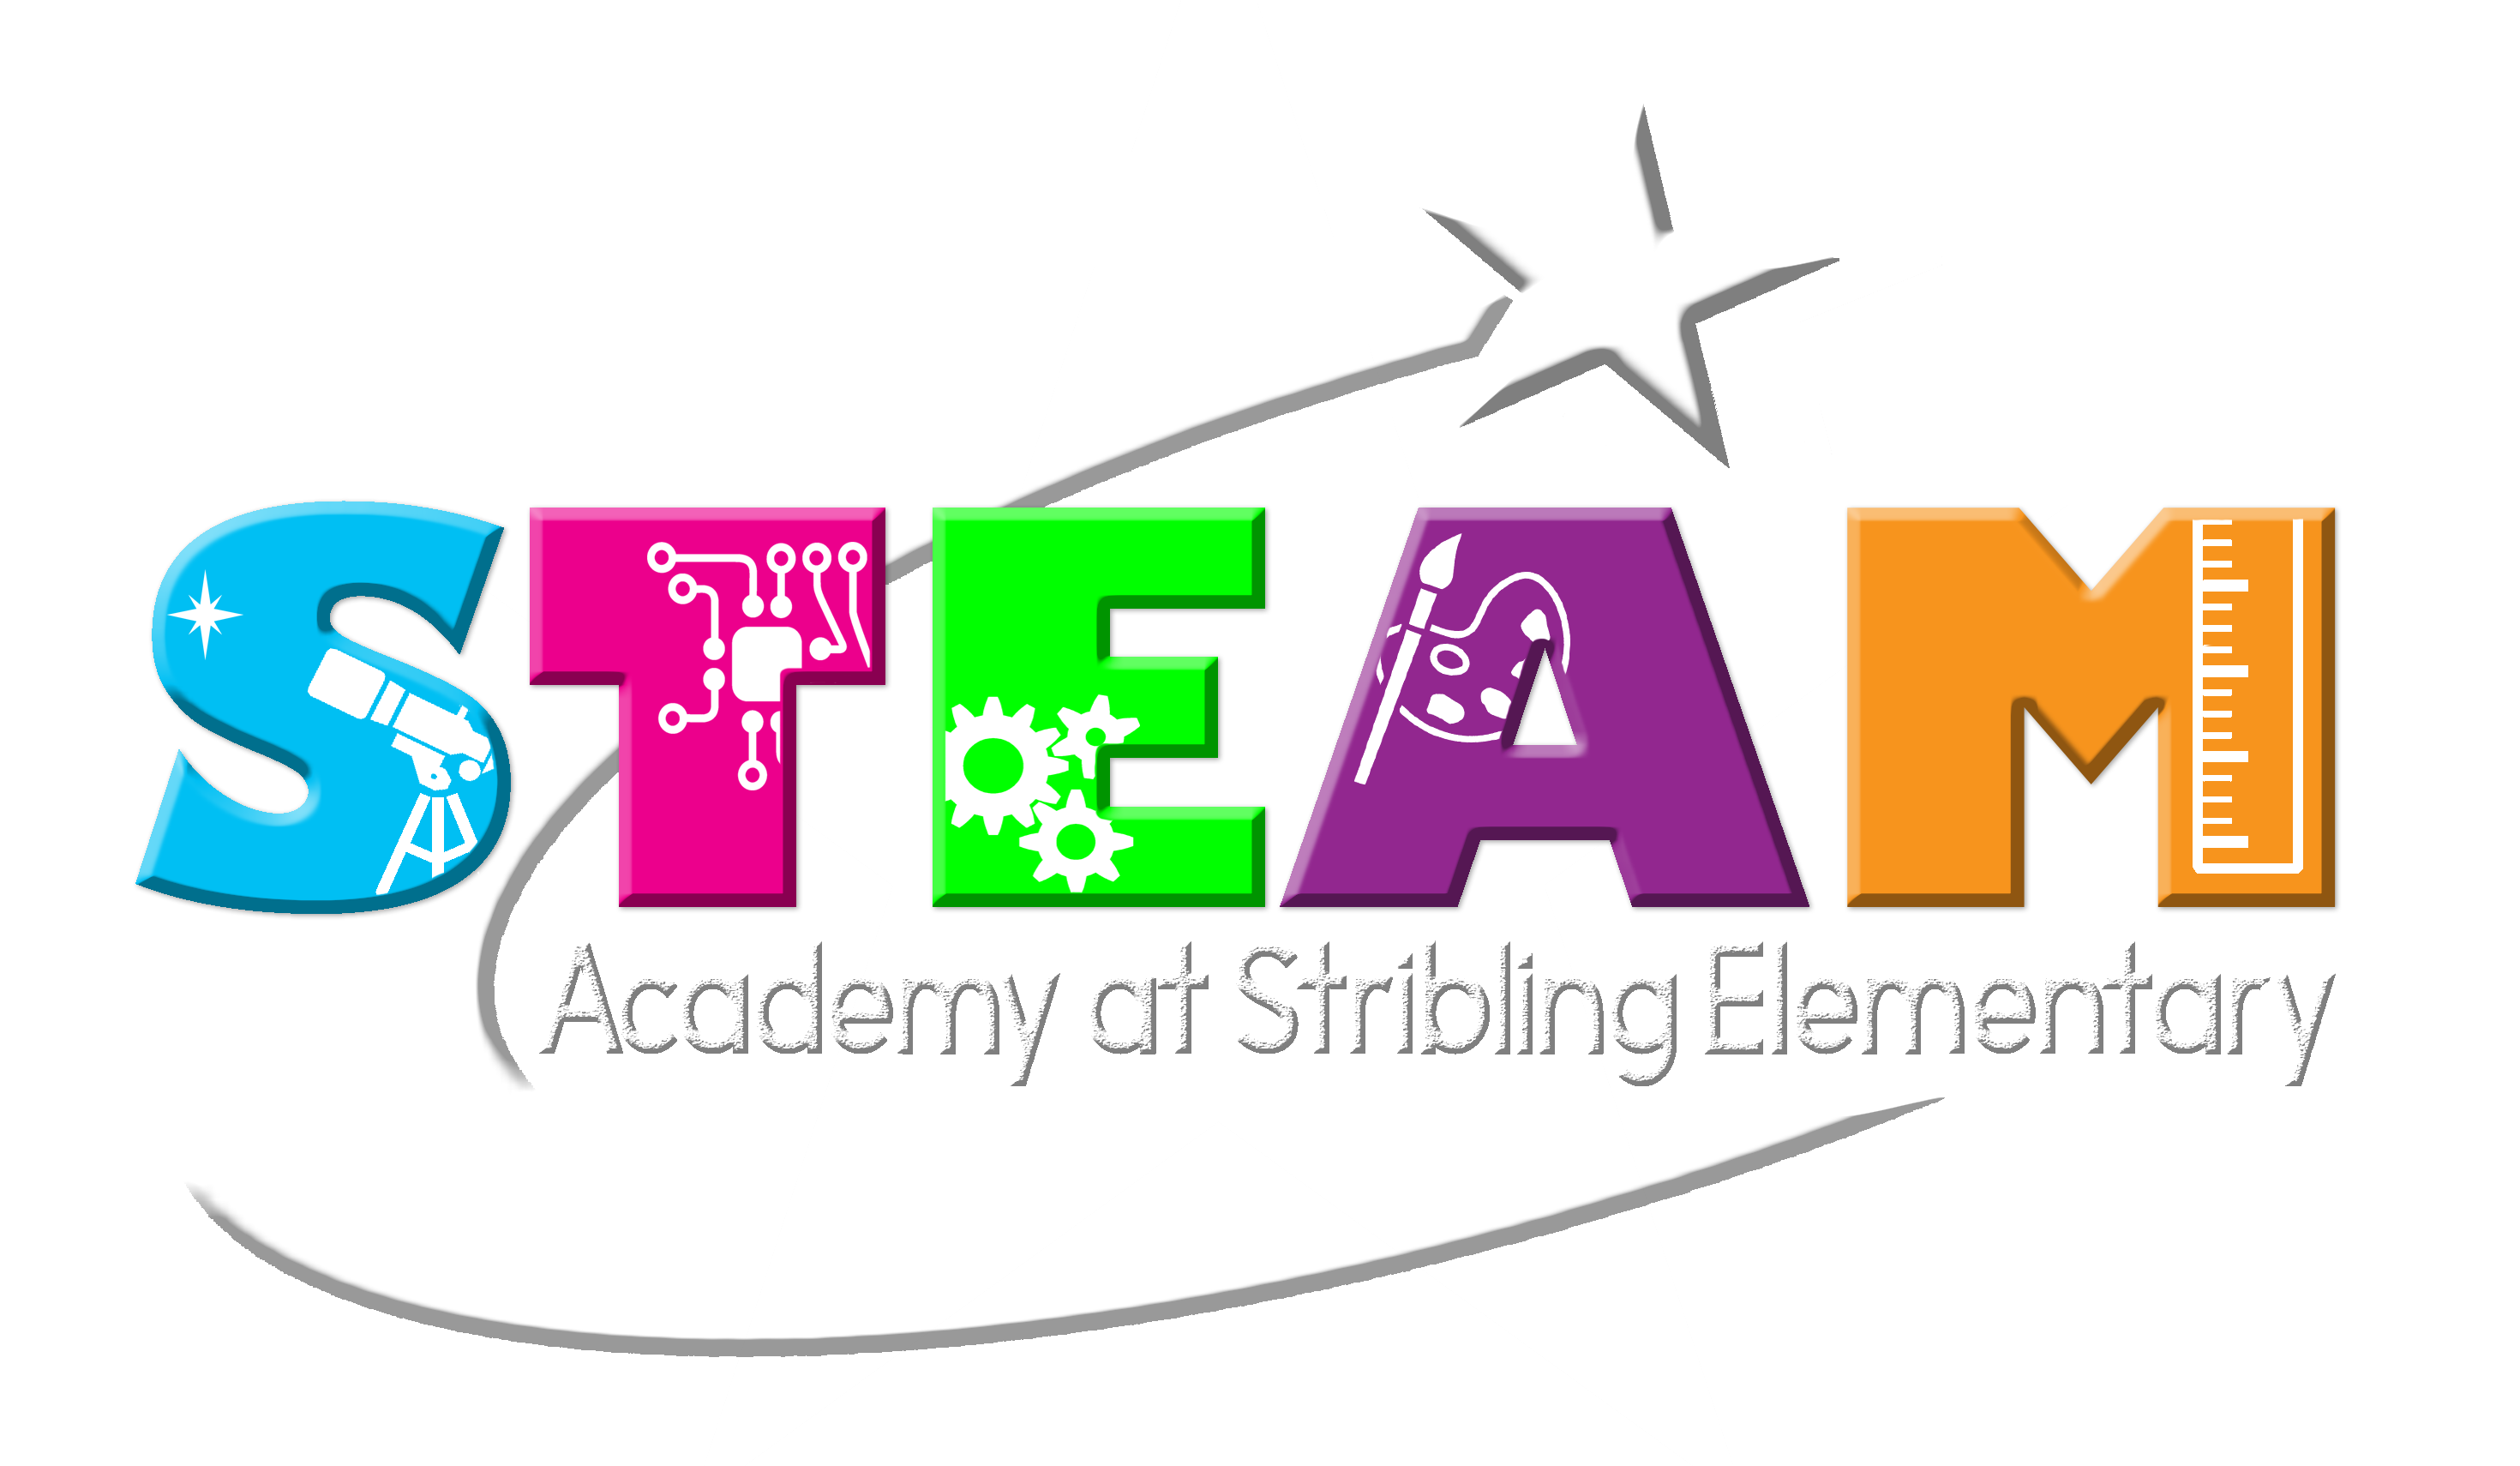 STEAM Academy at Stribling / Homepage